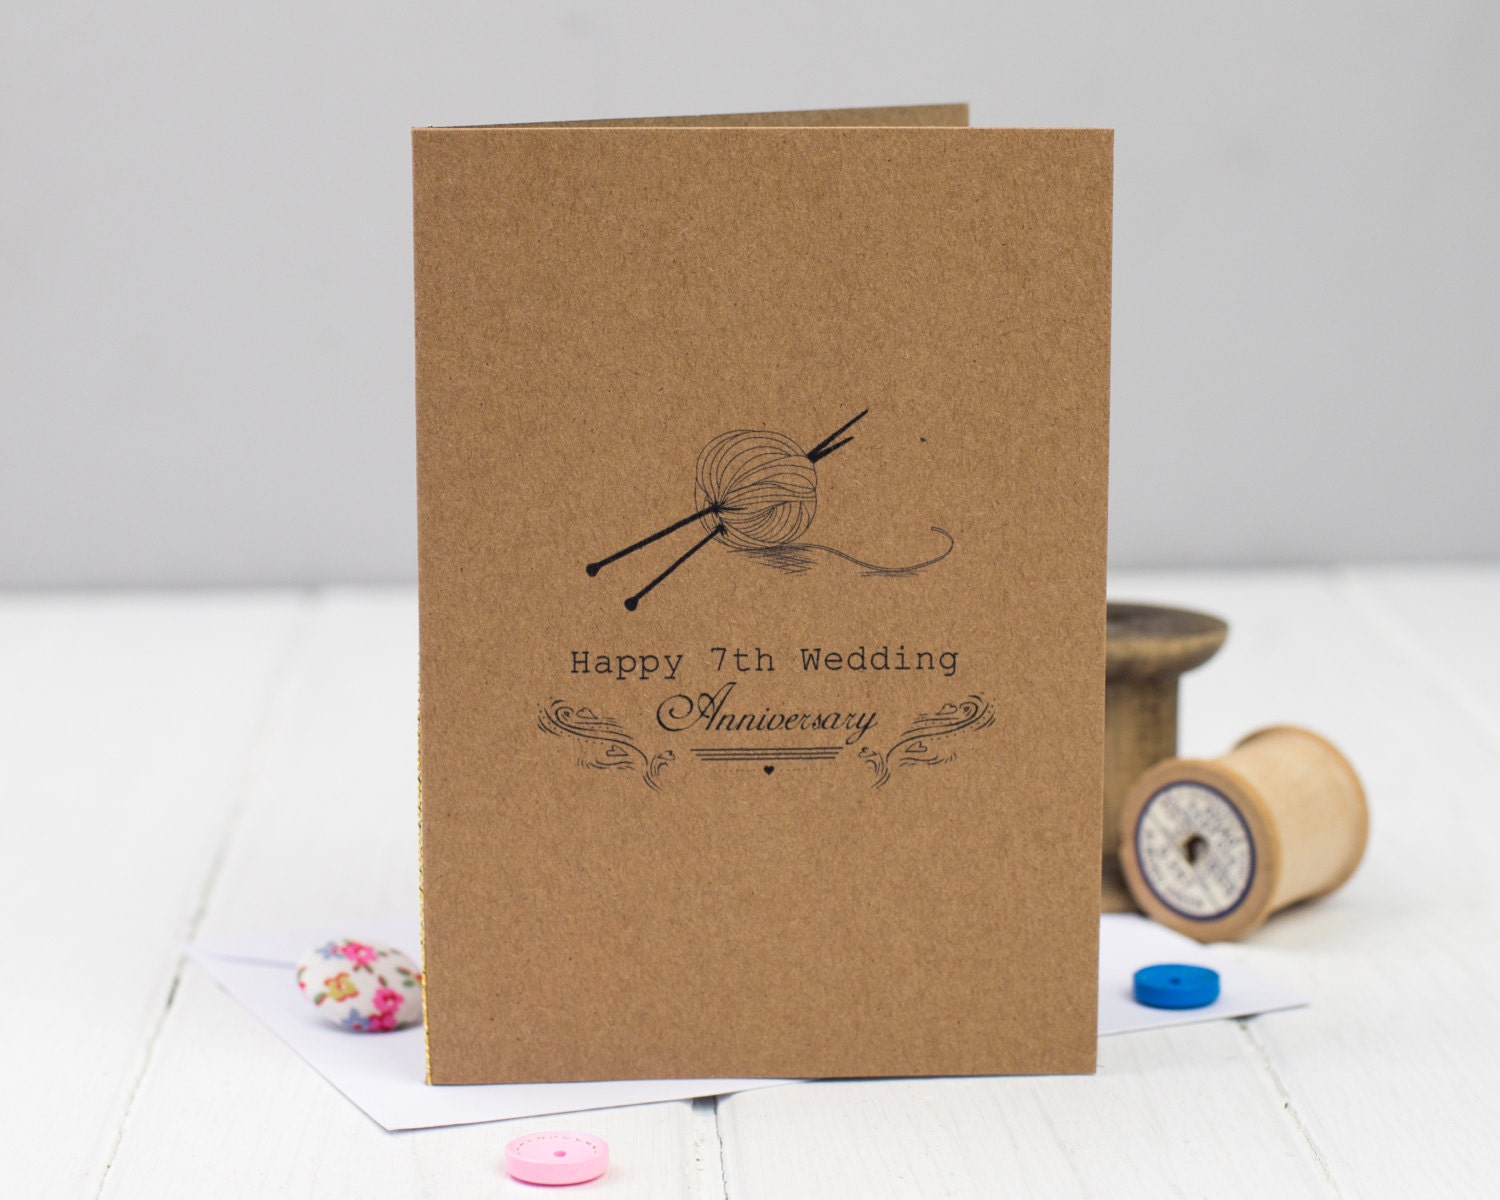 Gift For 7th Wedding Anniversary: 7th Anniversary Card Seventh Wedding Anniversary Card Wool